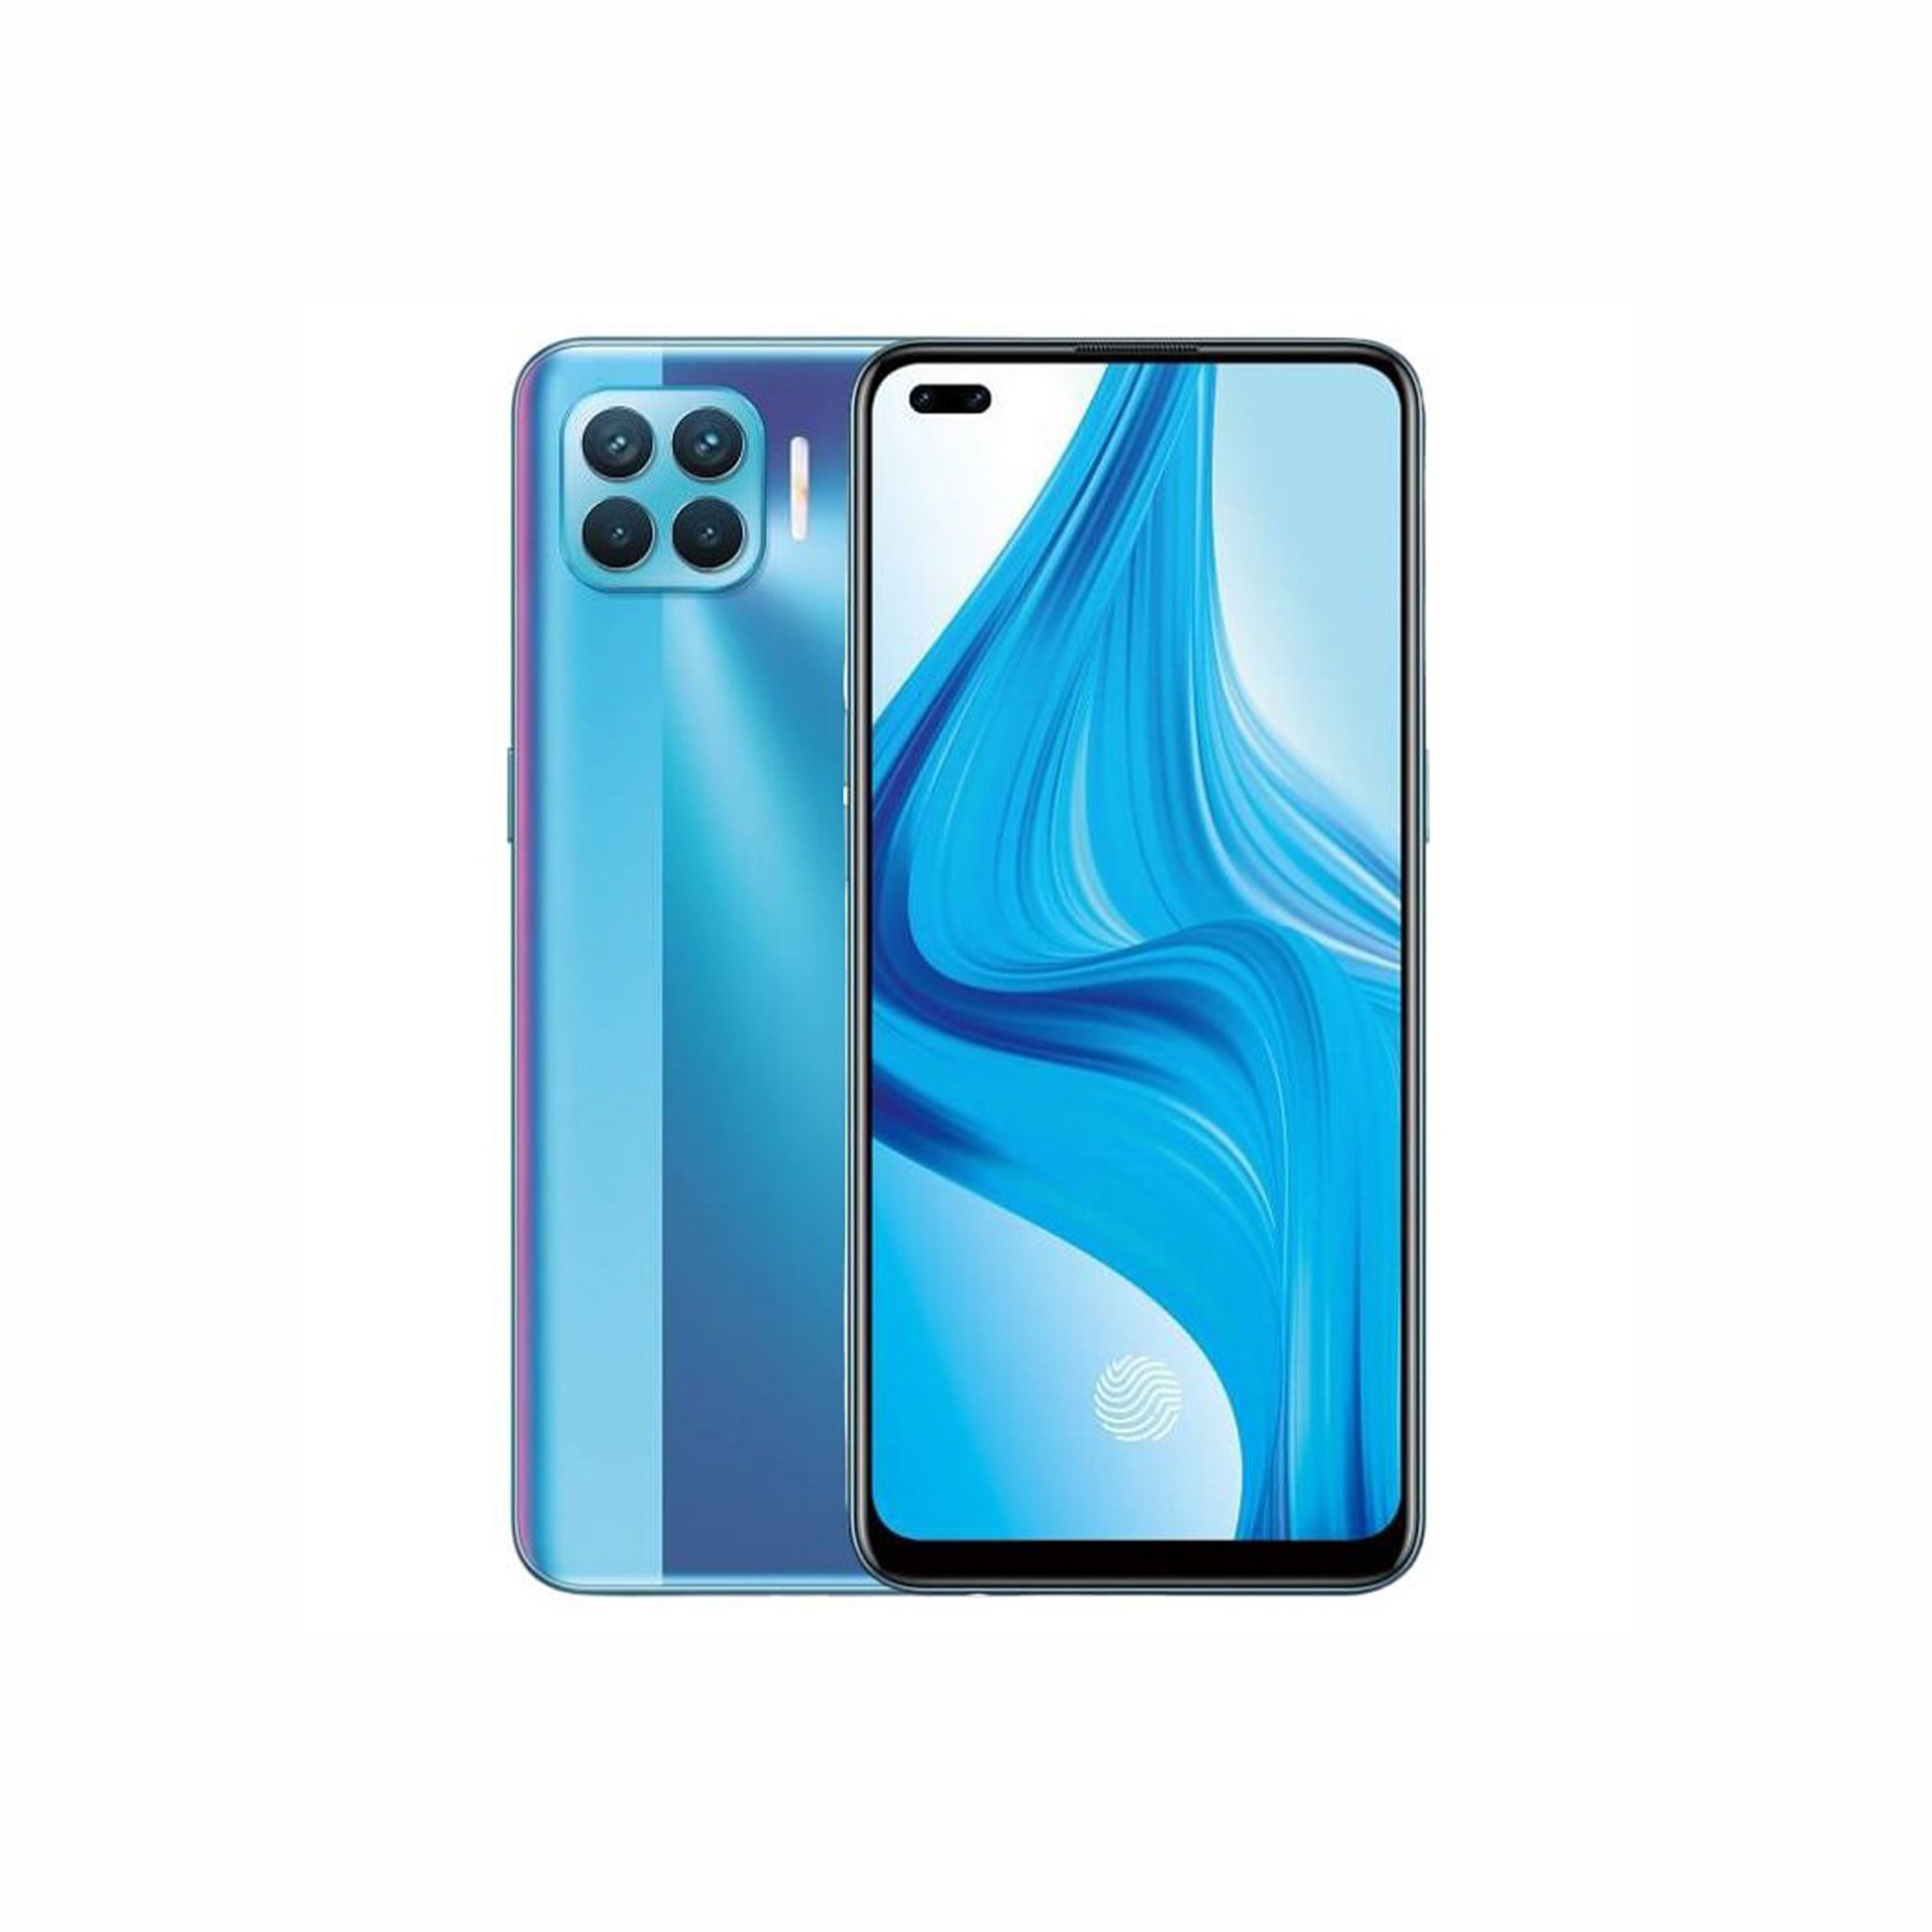 Oppo Reno4 F - description and parameters